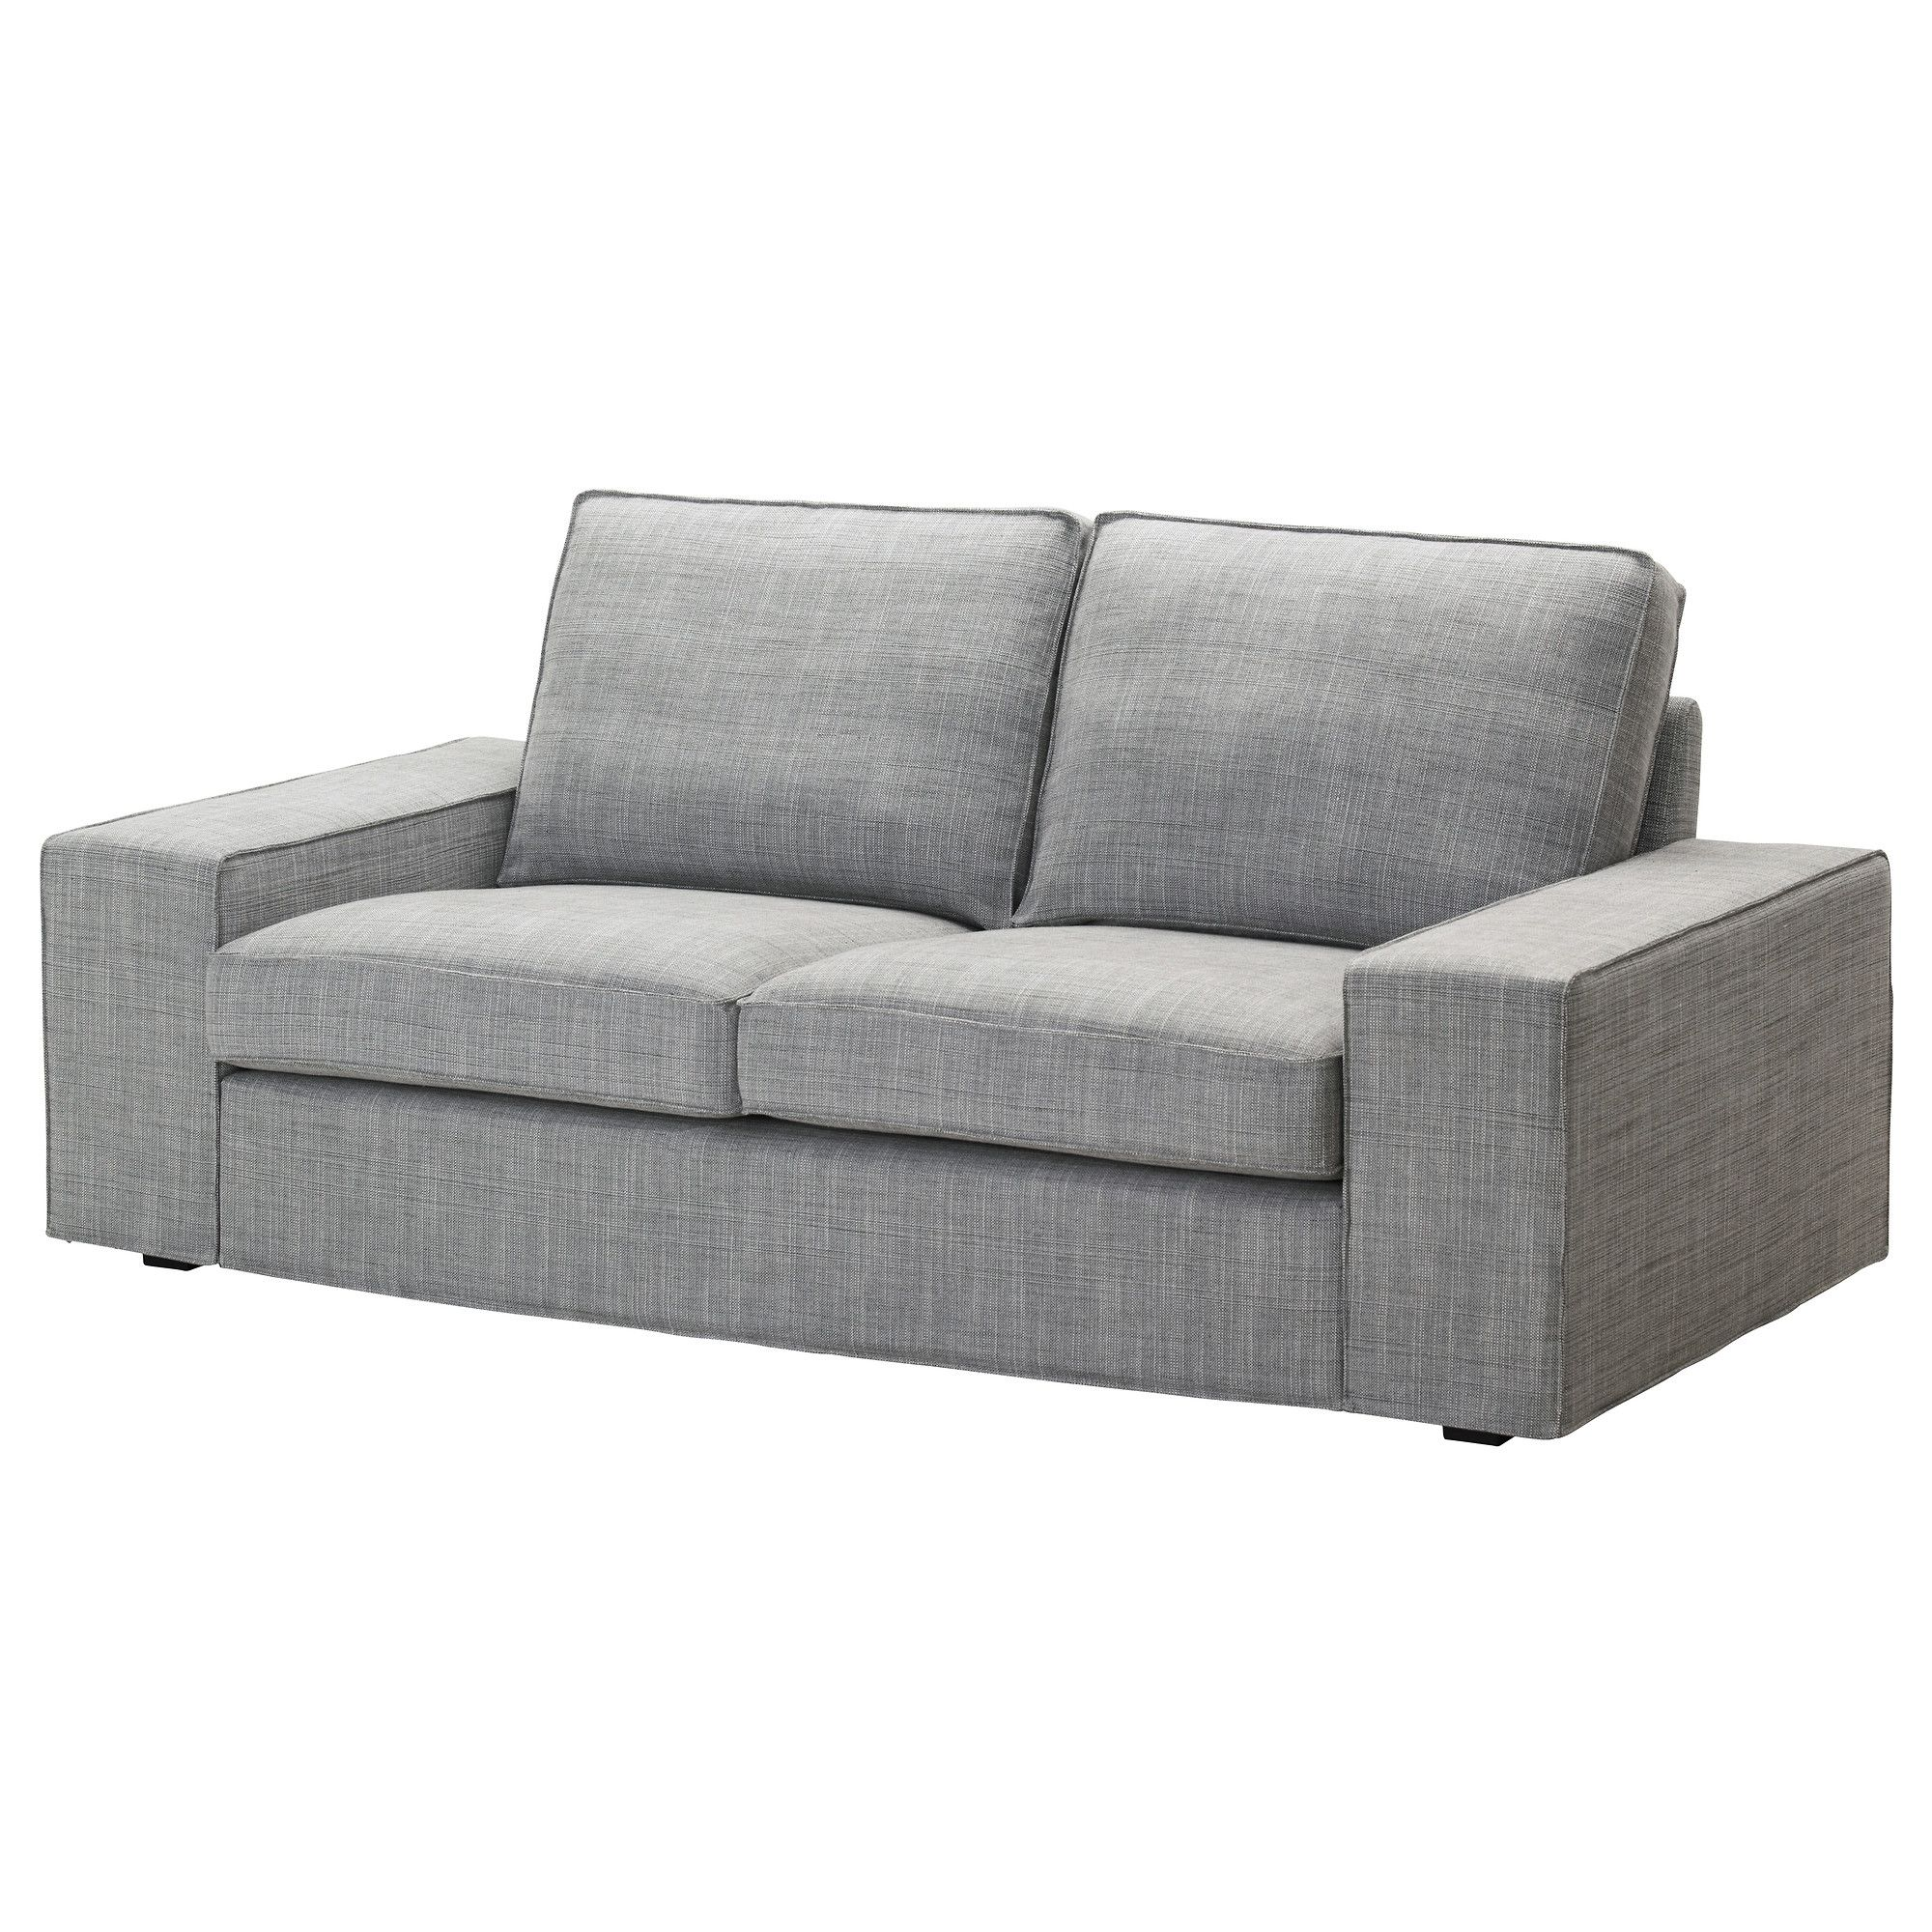 mayfield replacement set qlt pennington cushion ty wid loveseat prod single hei p